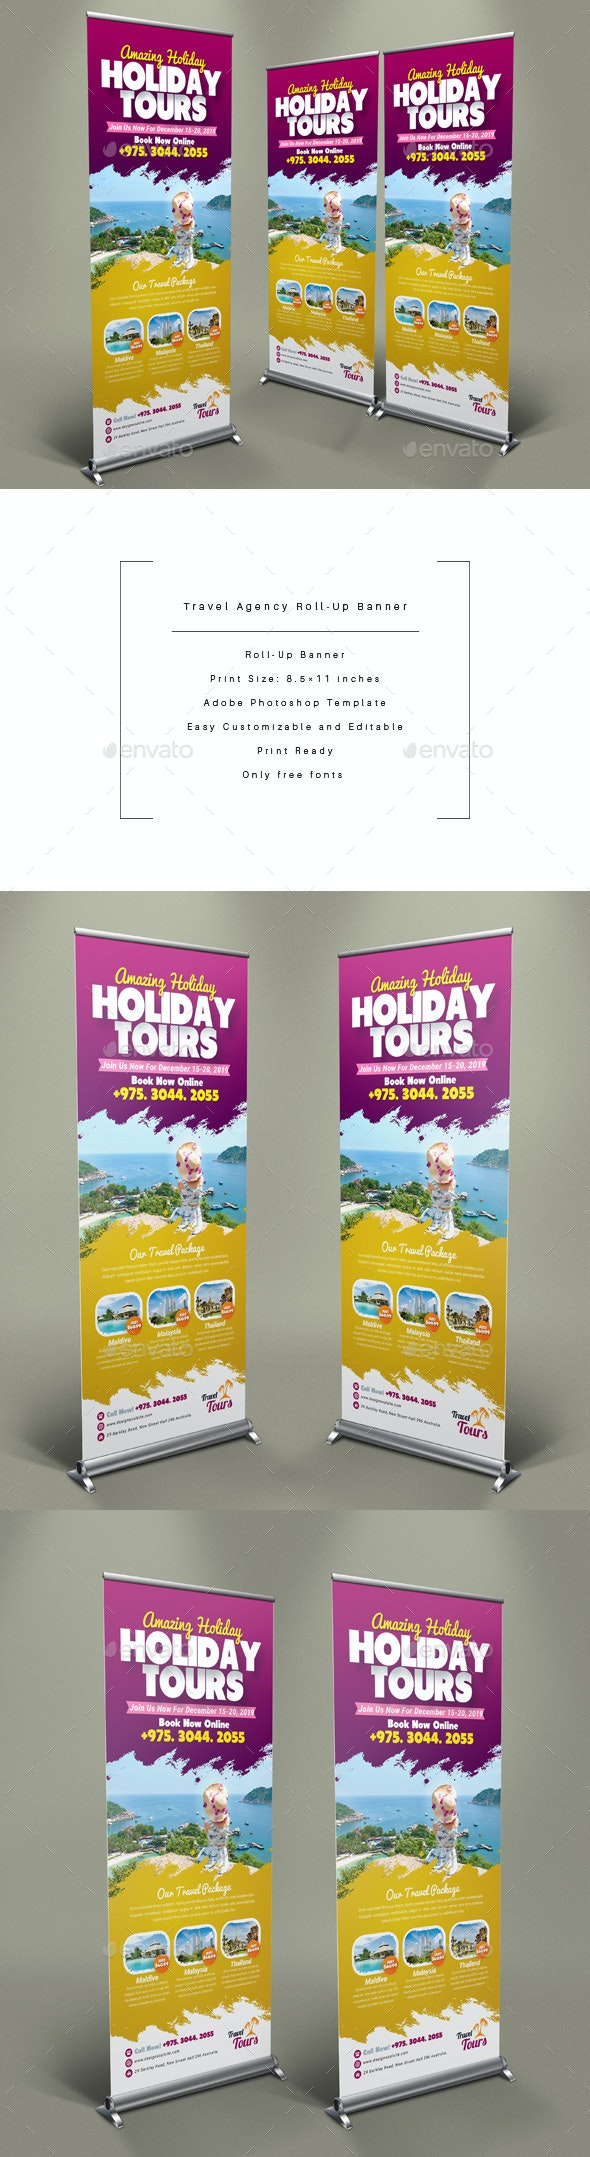 Travel Agency Roll-Up Banner - Signage Print Templates